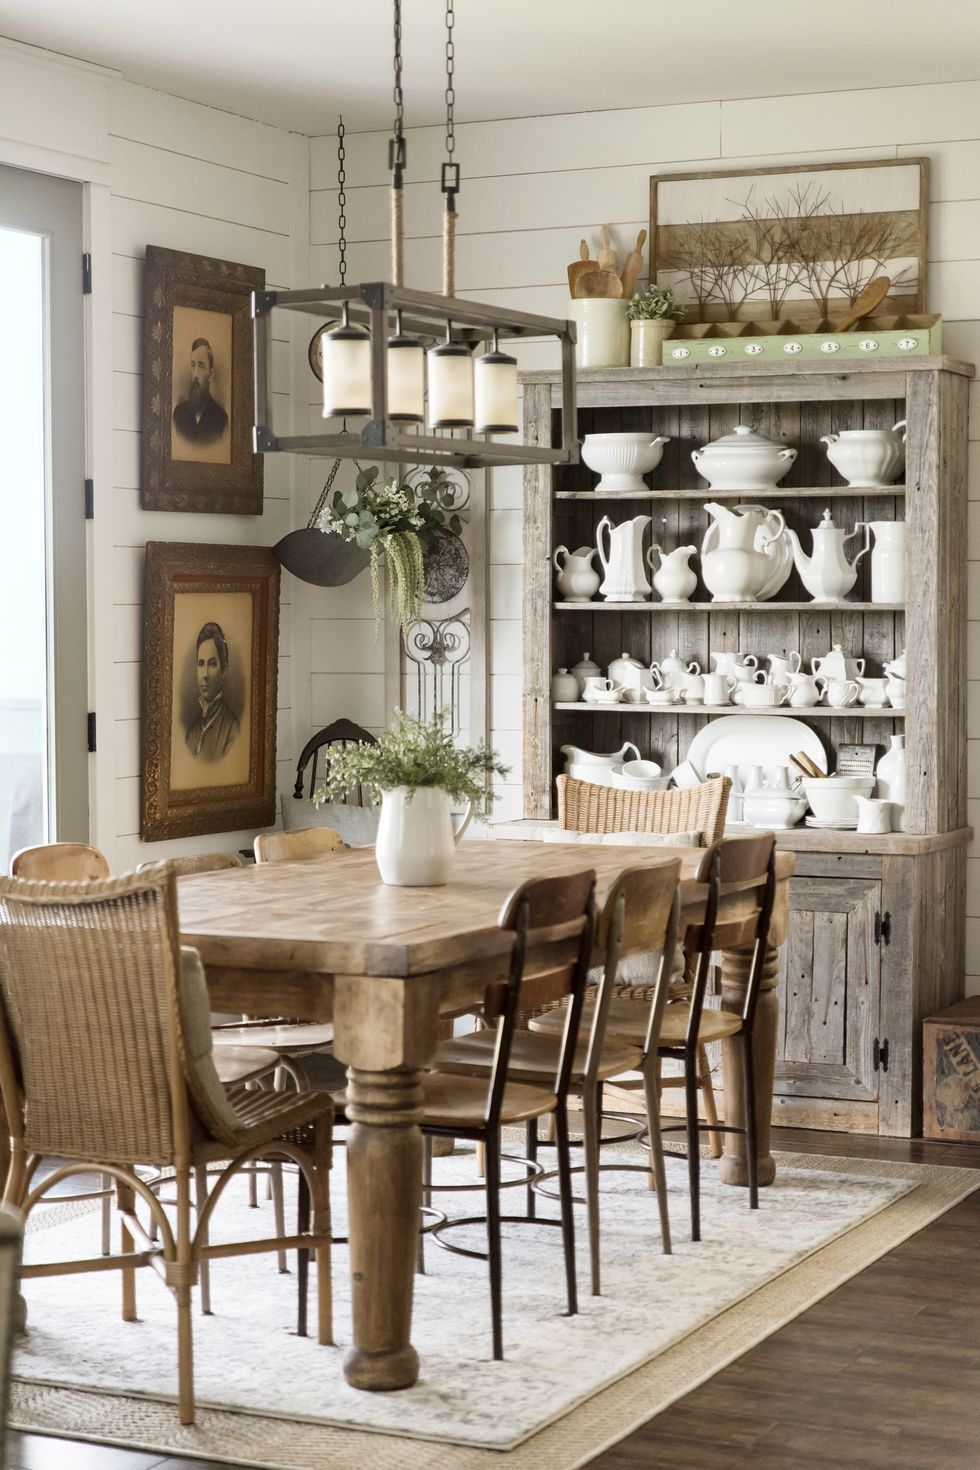 Olive Trees in 2020 Trending decor, Home decor trends